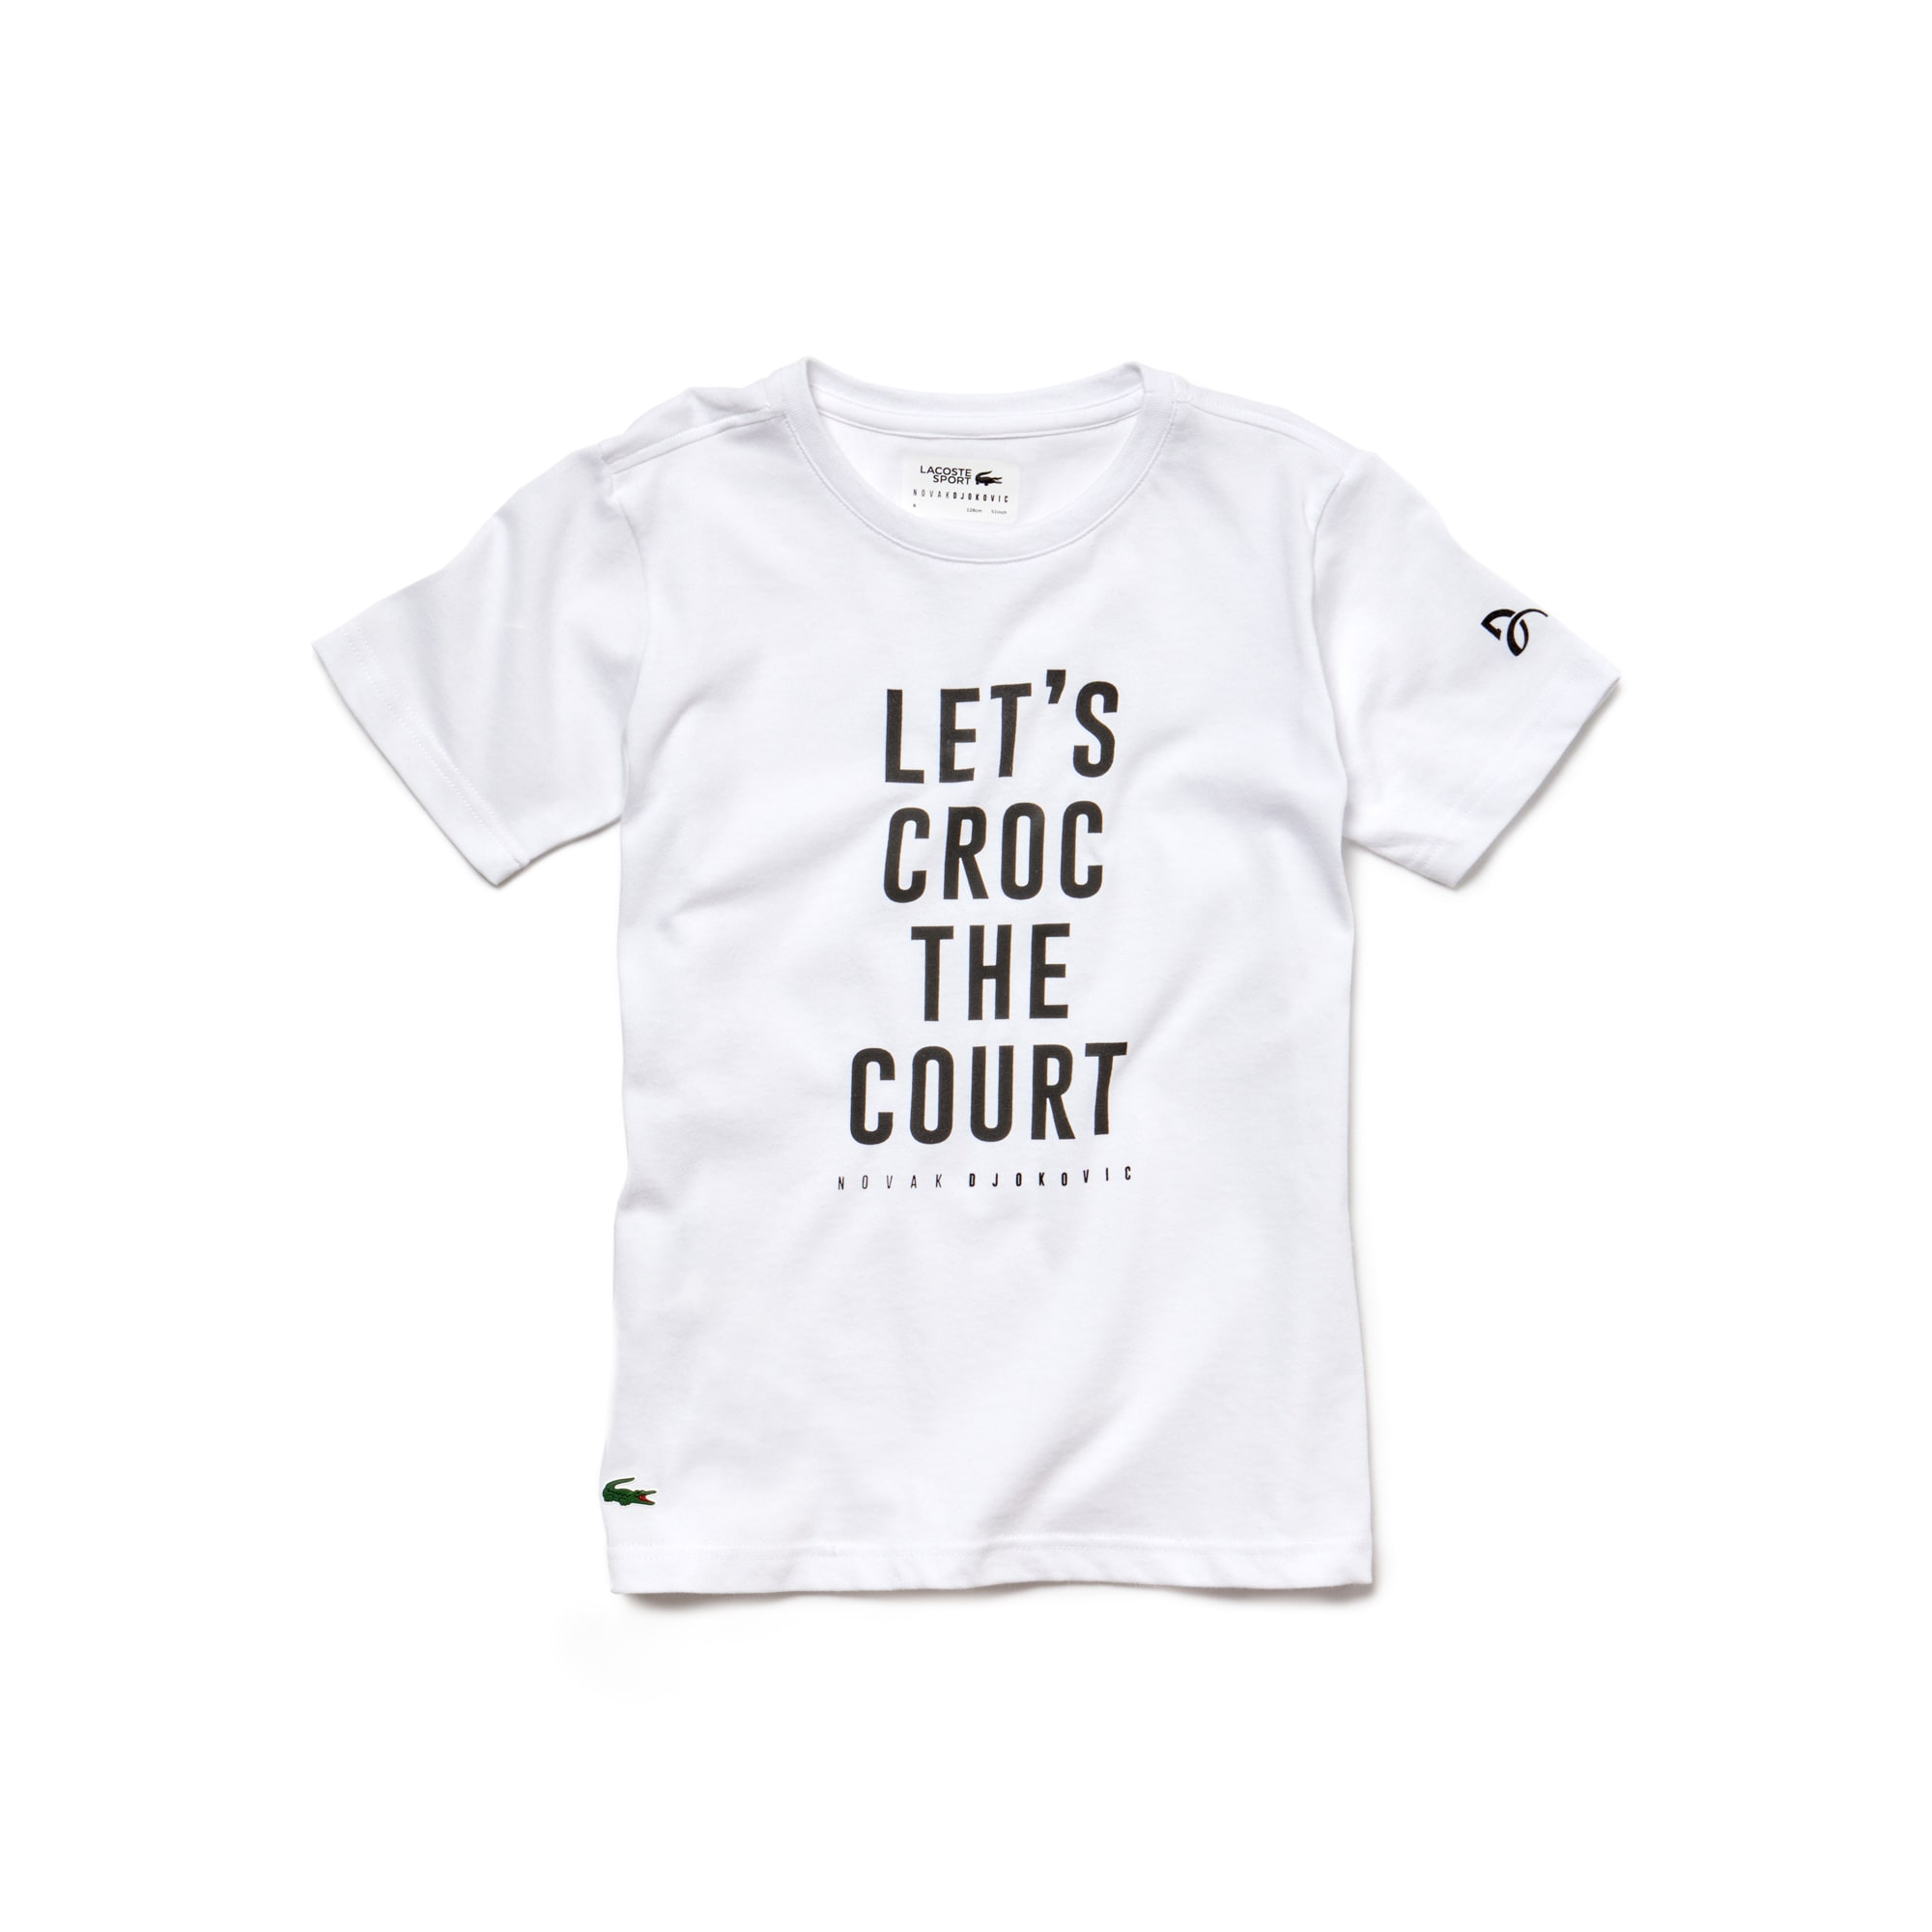 Lacoste SPORT NOVAK DJOKOVIC SUPPORT WITH STYLE - OFF COURT COLLECTION-T-Shirt jongens technische jersey met letters